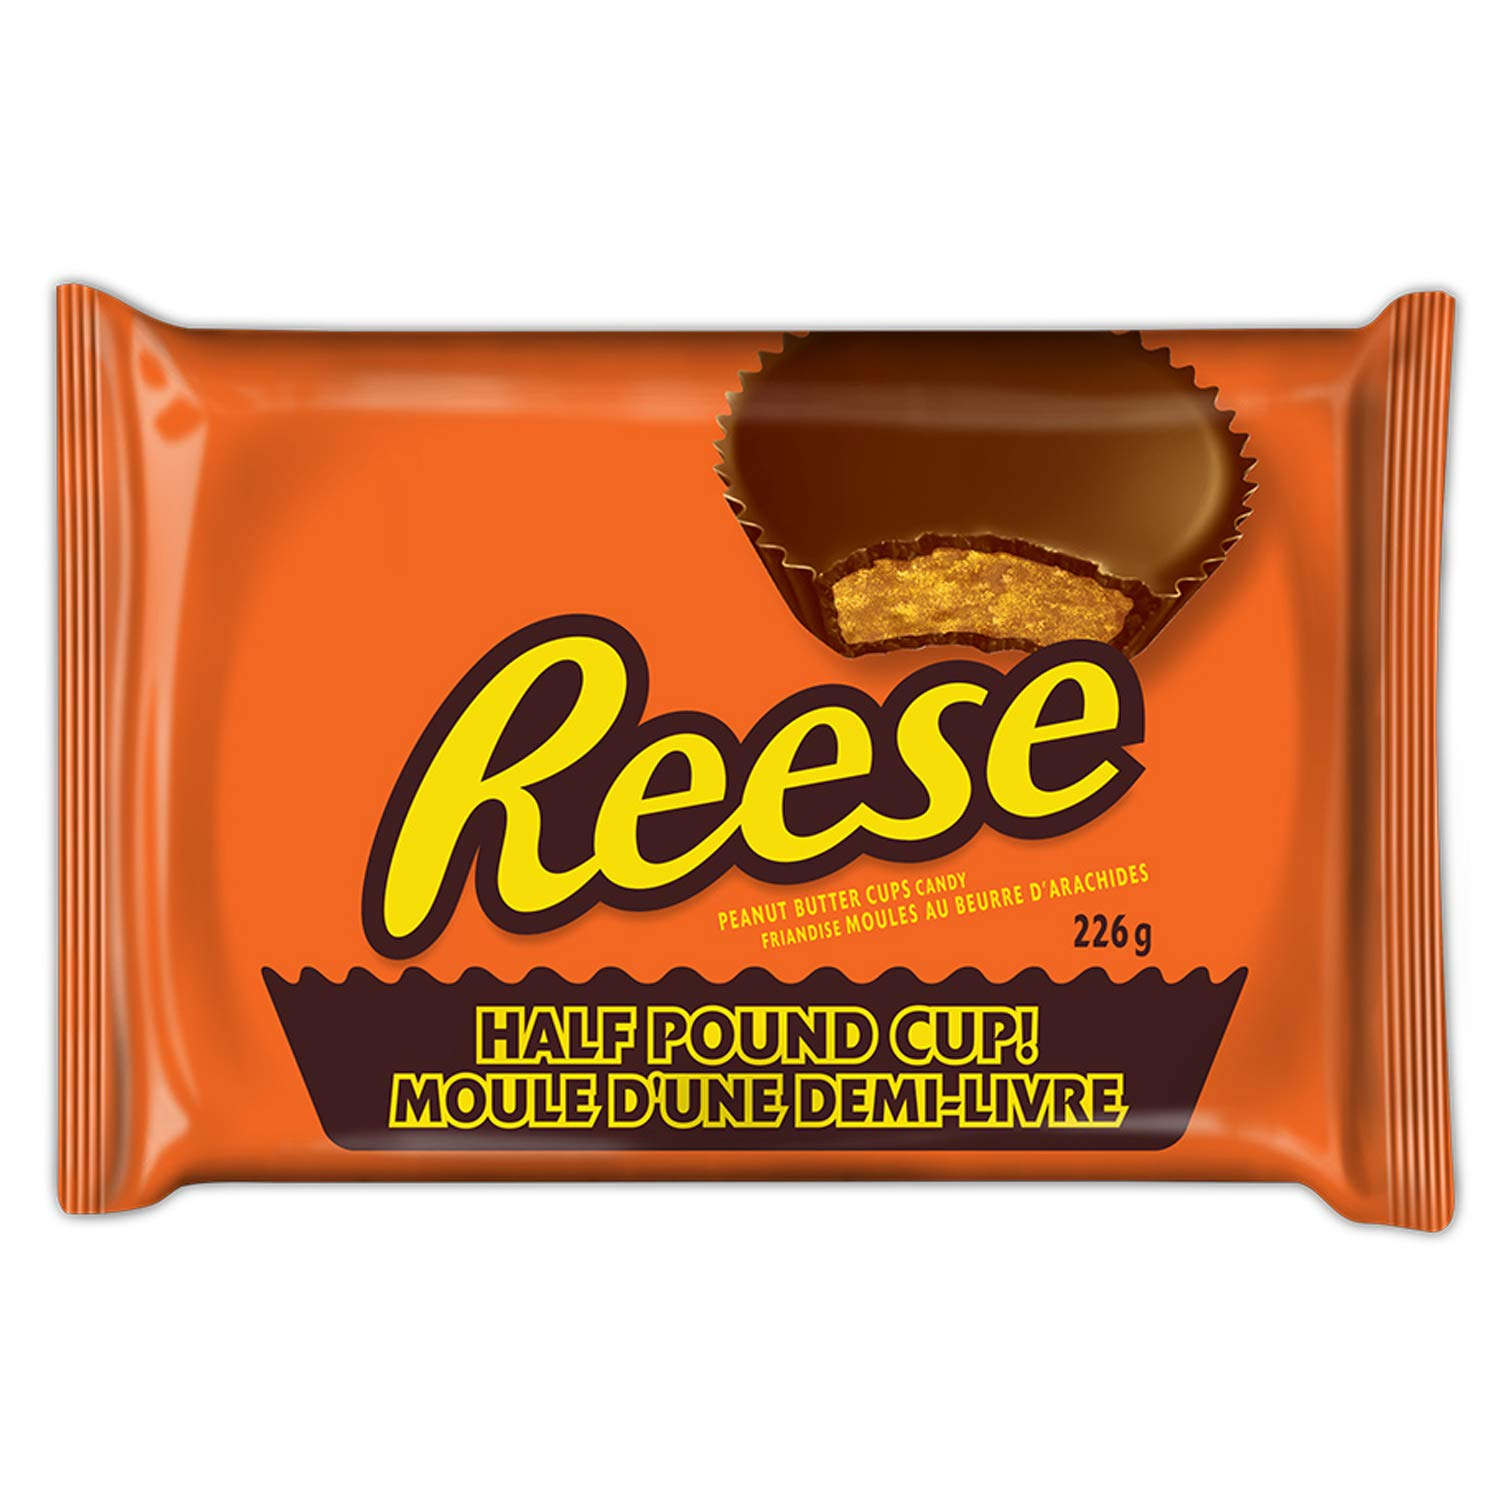 Reese Peanut Butter Cup Candy Half Pound Cup 226 Gram 7 97oz Buy Online In Guernsey At Guernsey Desertcart Com Productid 38969373